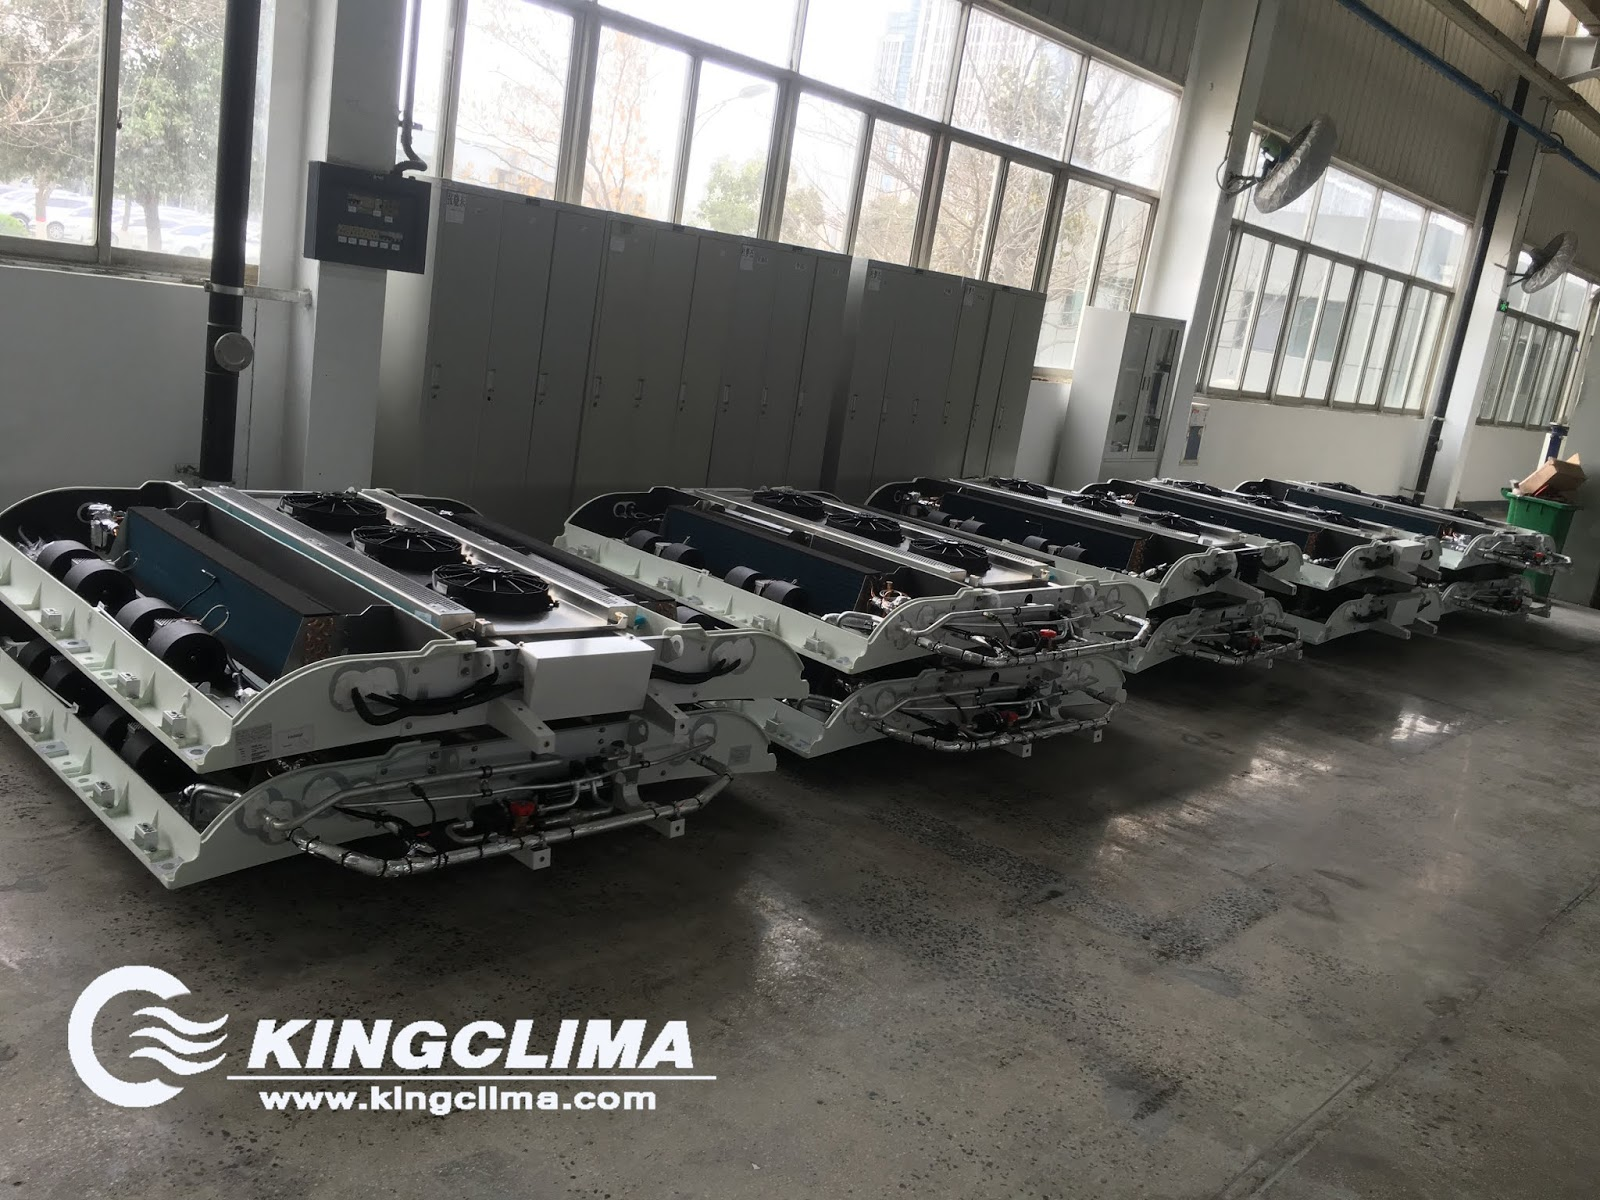 King Clima Auto Cooling and Heating Solutions: KingClima